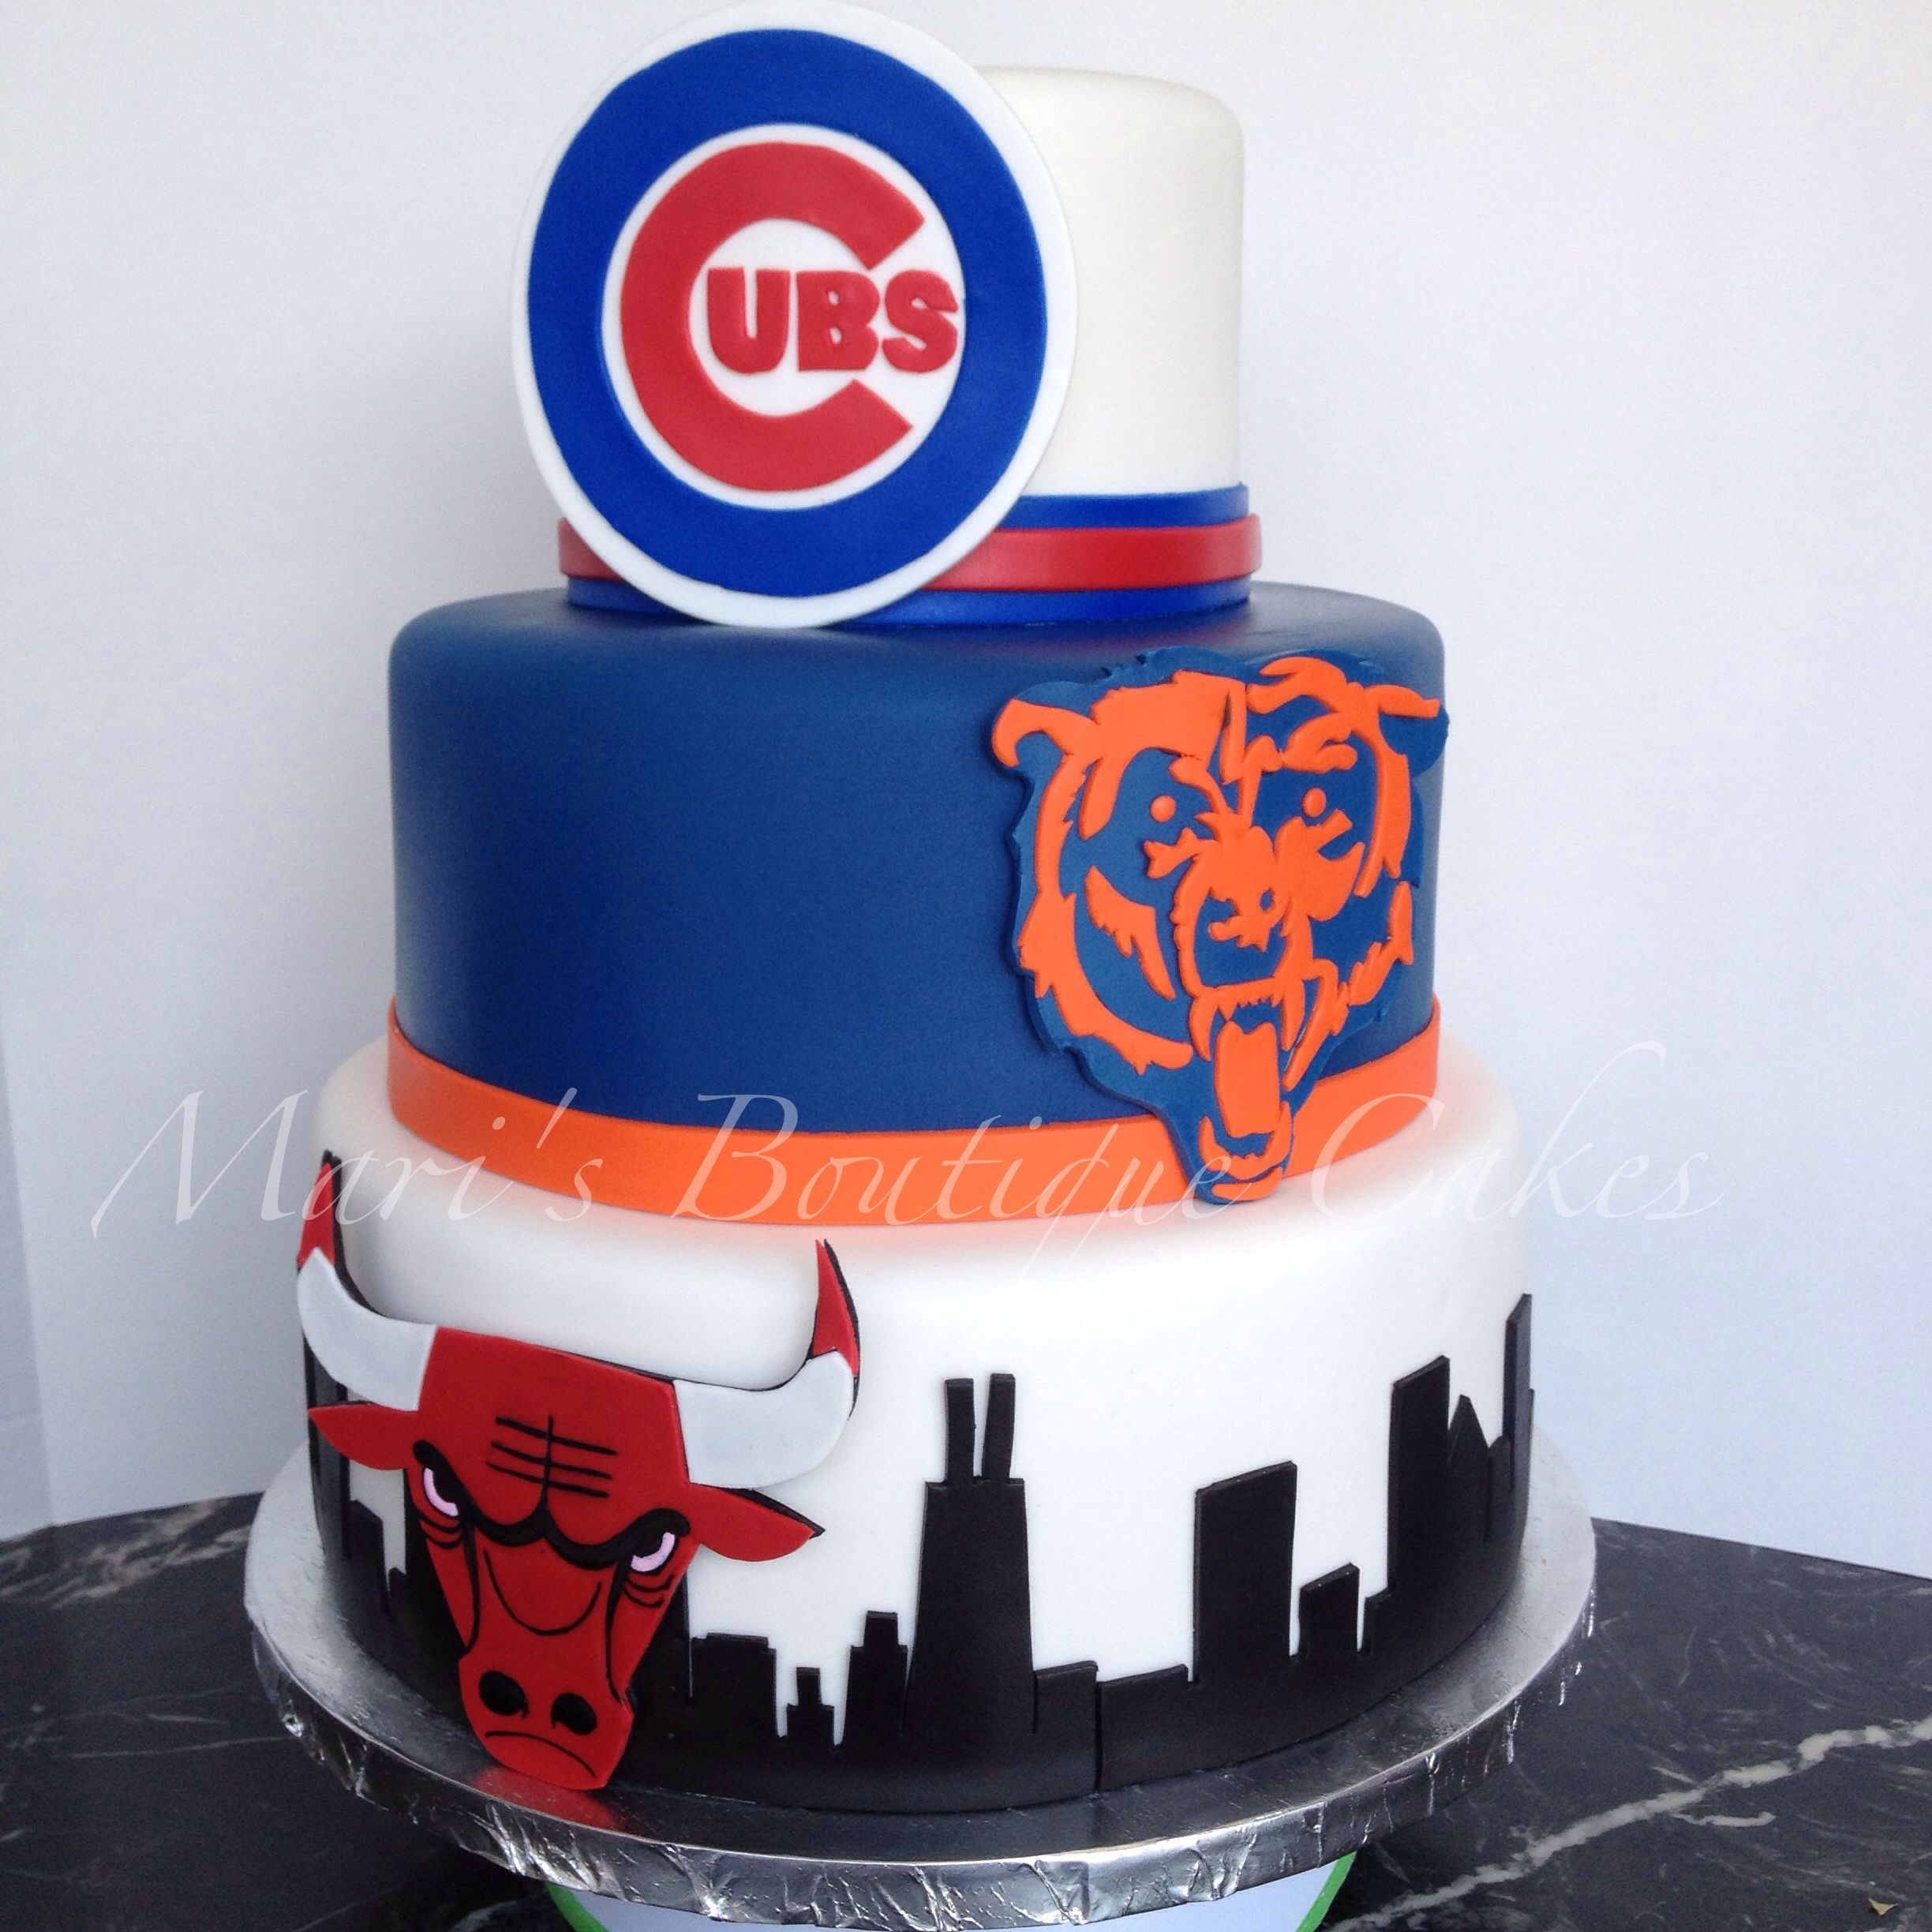 34 Best Chicago Cubs Cakes Images On Pinterest: Chicago Cubs, Chicago Bears, And Chicago Bulls Cake